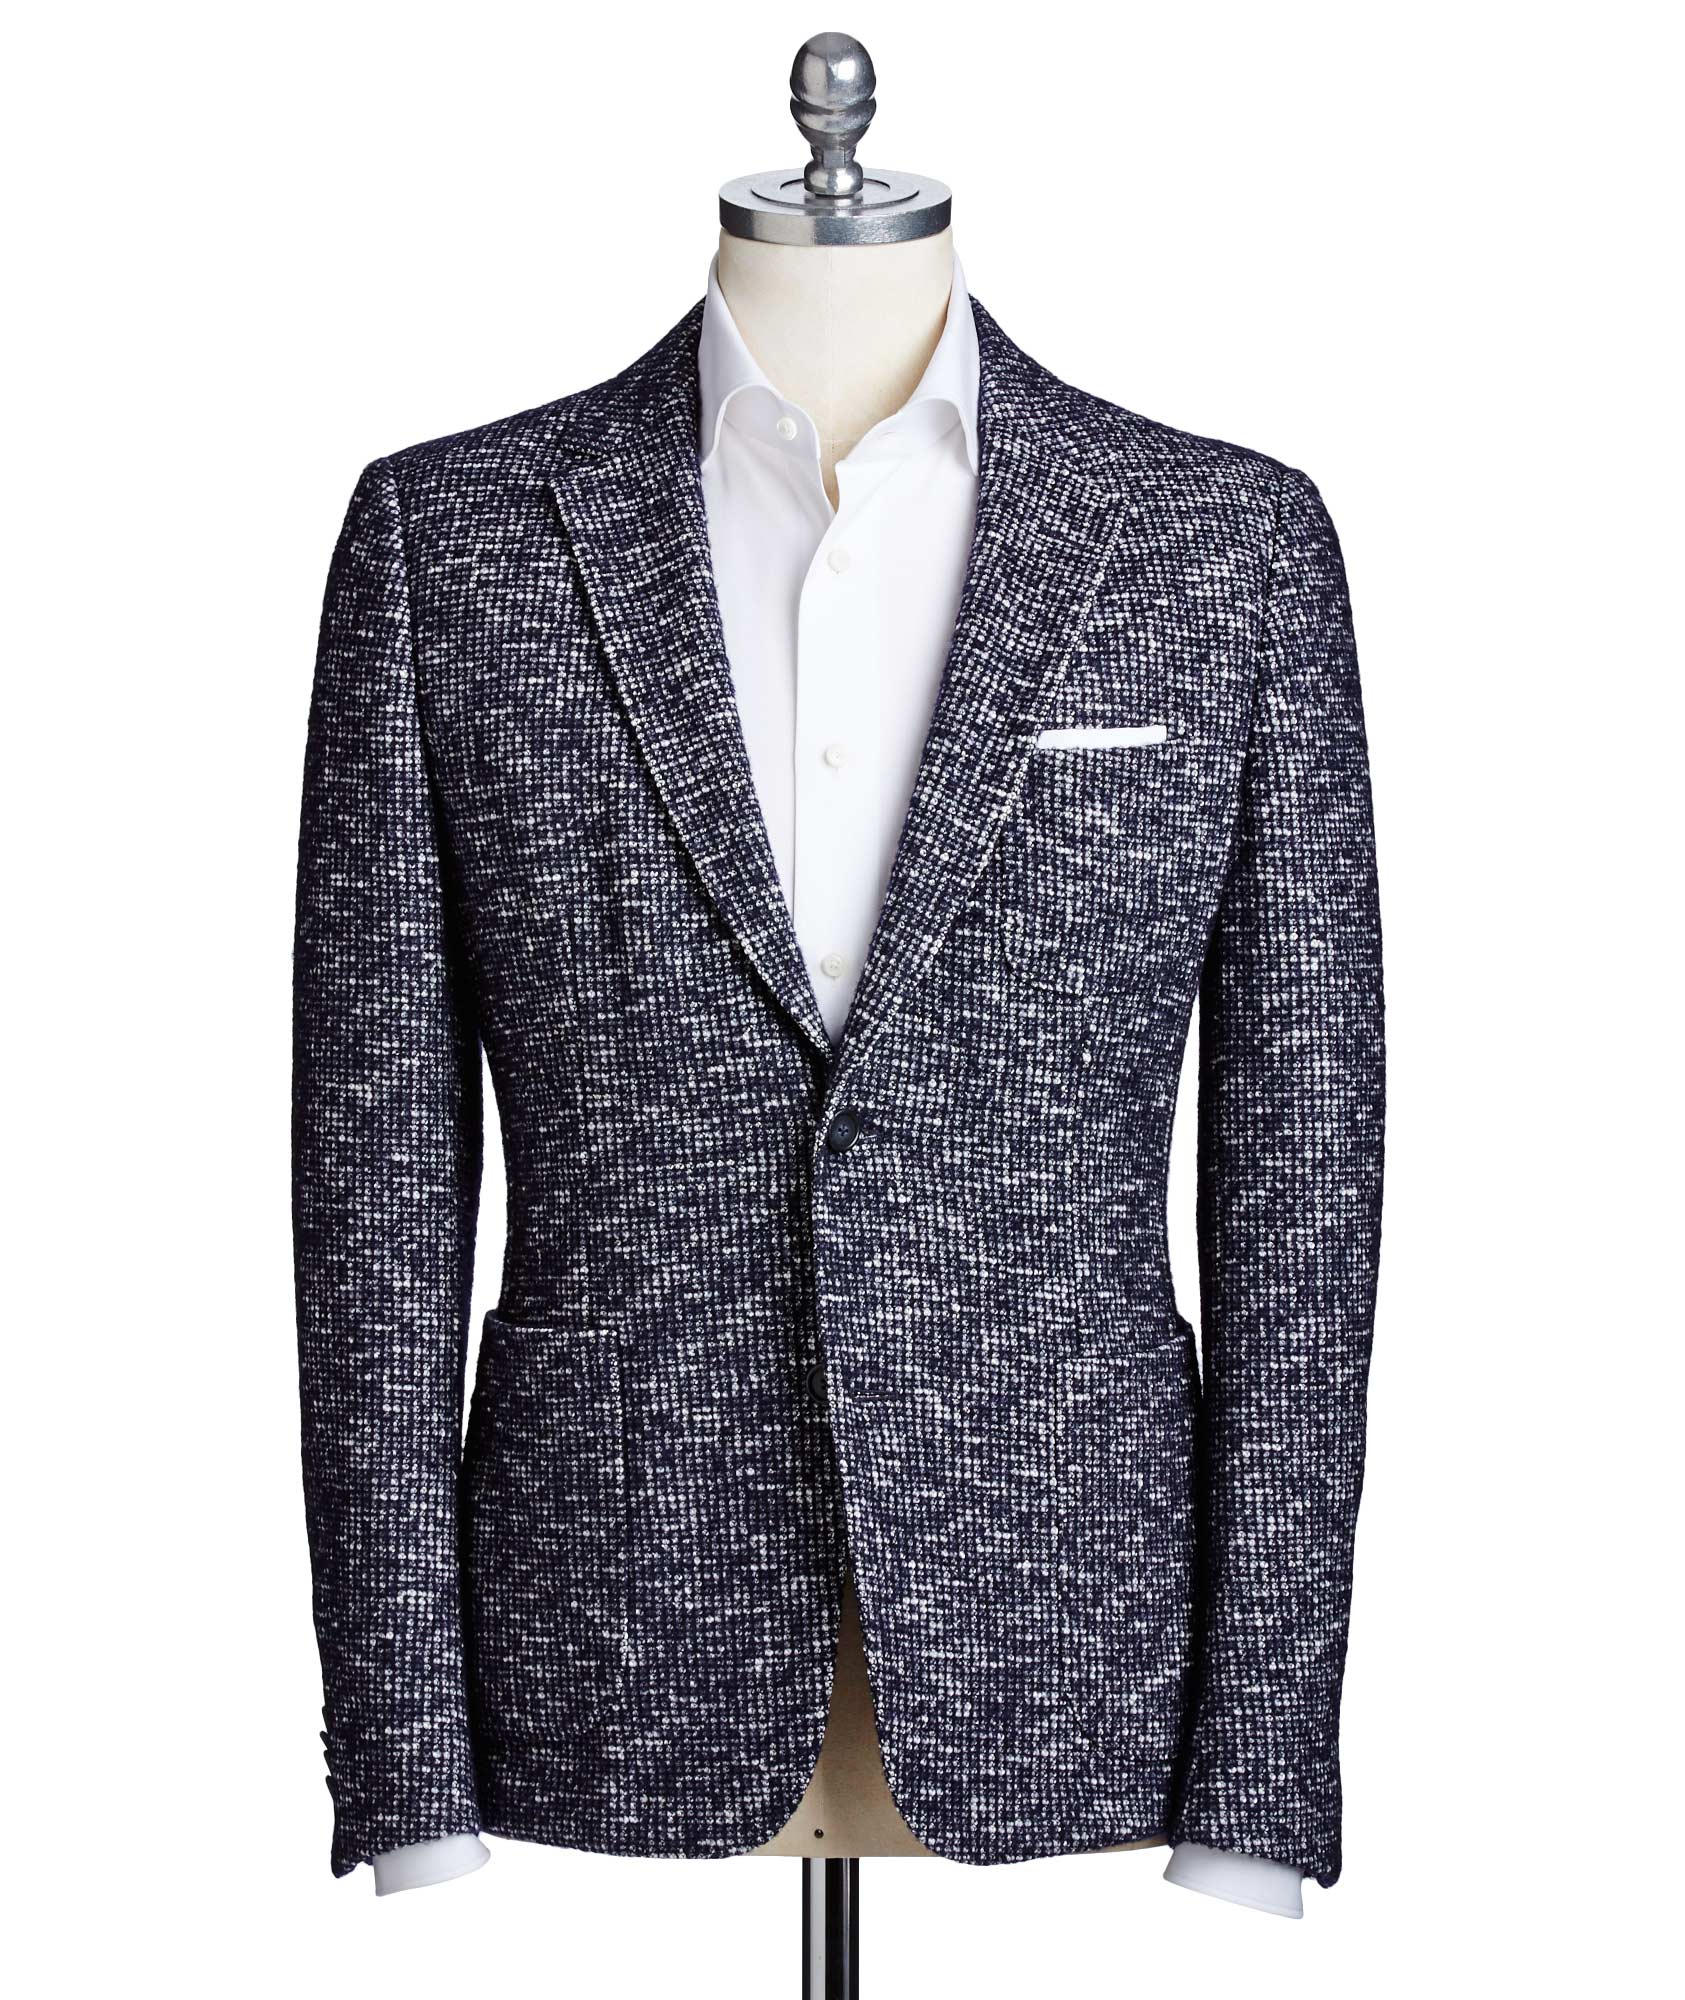 Why the confusion between Sport Jacket and Suit Jackets? The confusion between sport jackets and suit jackets is a more modern problem. Fifty years ago most men wore and understood the rules of wearing a suit, and a sport jacket was just that – a jacket for sport worn when the season and situation.